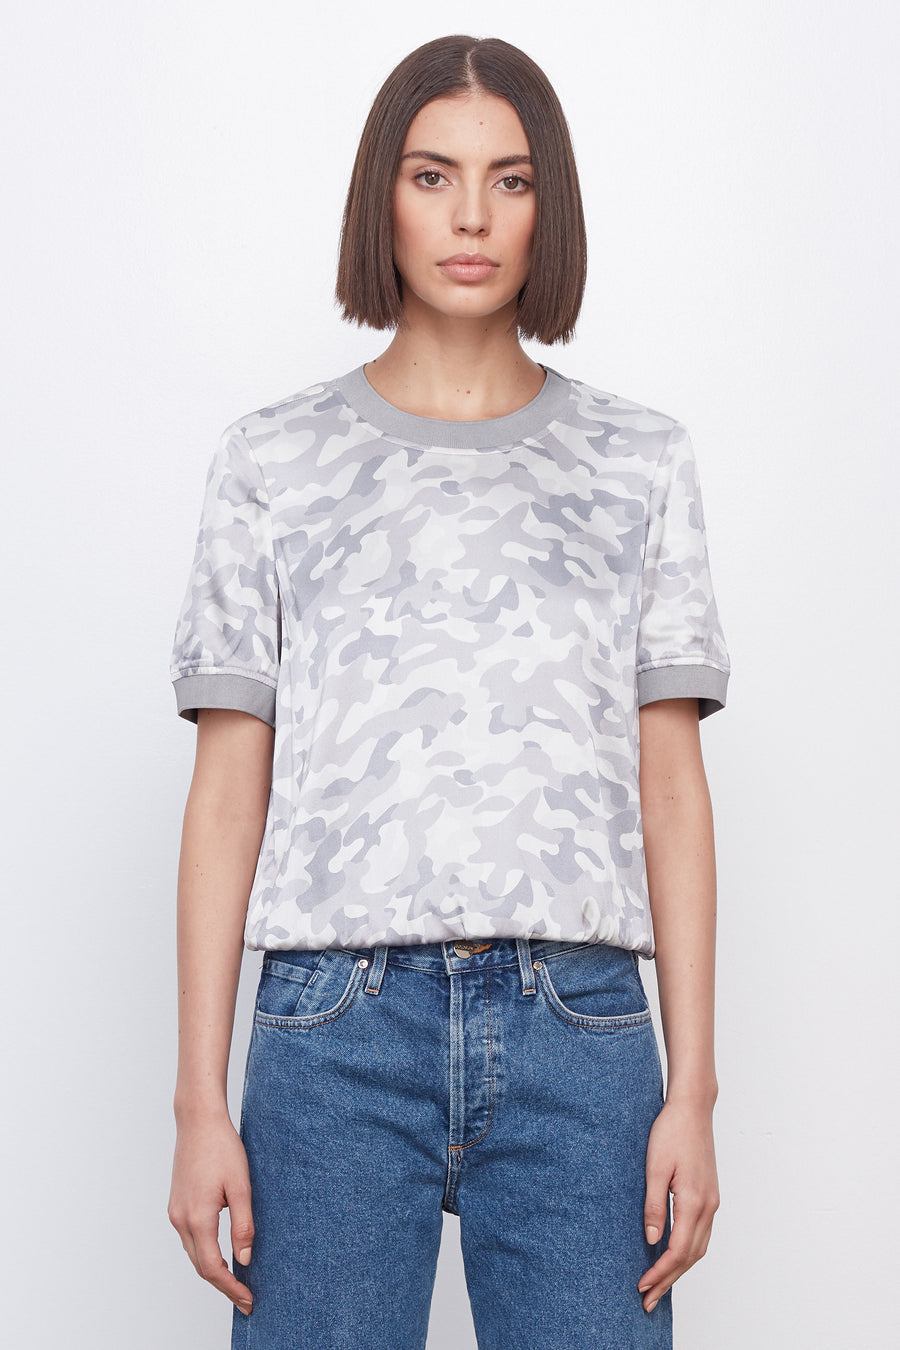 The T-Shirt Greyscale Camo/Grey